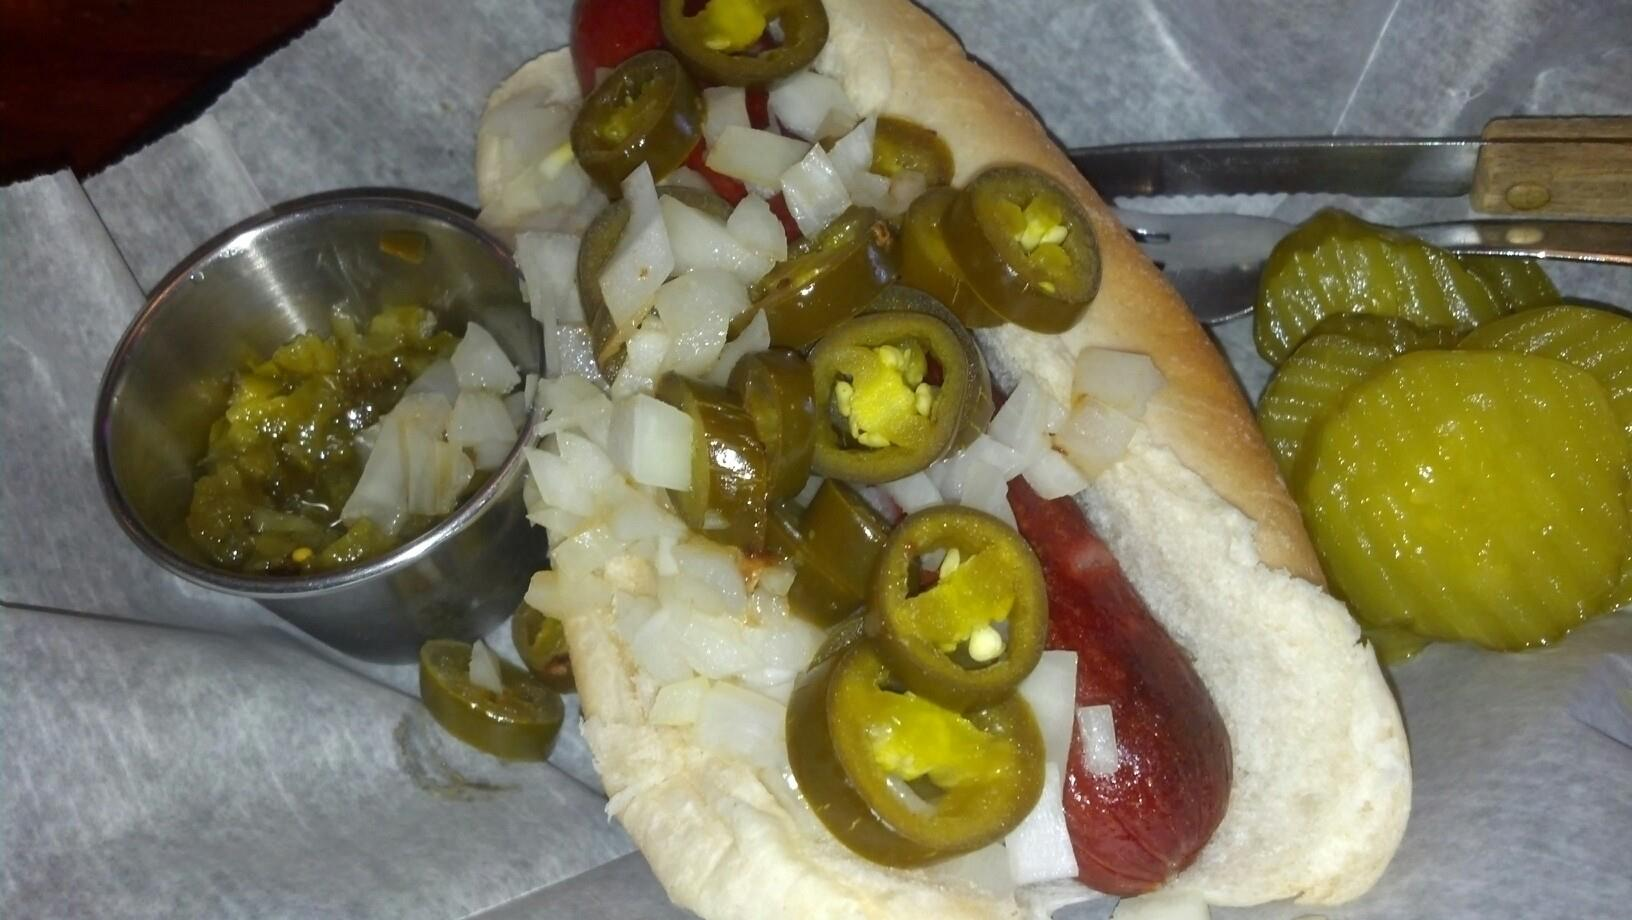 Hot Dog with the works!